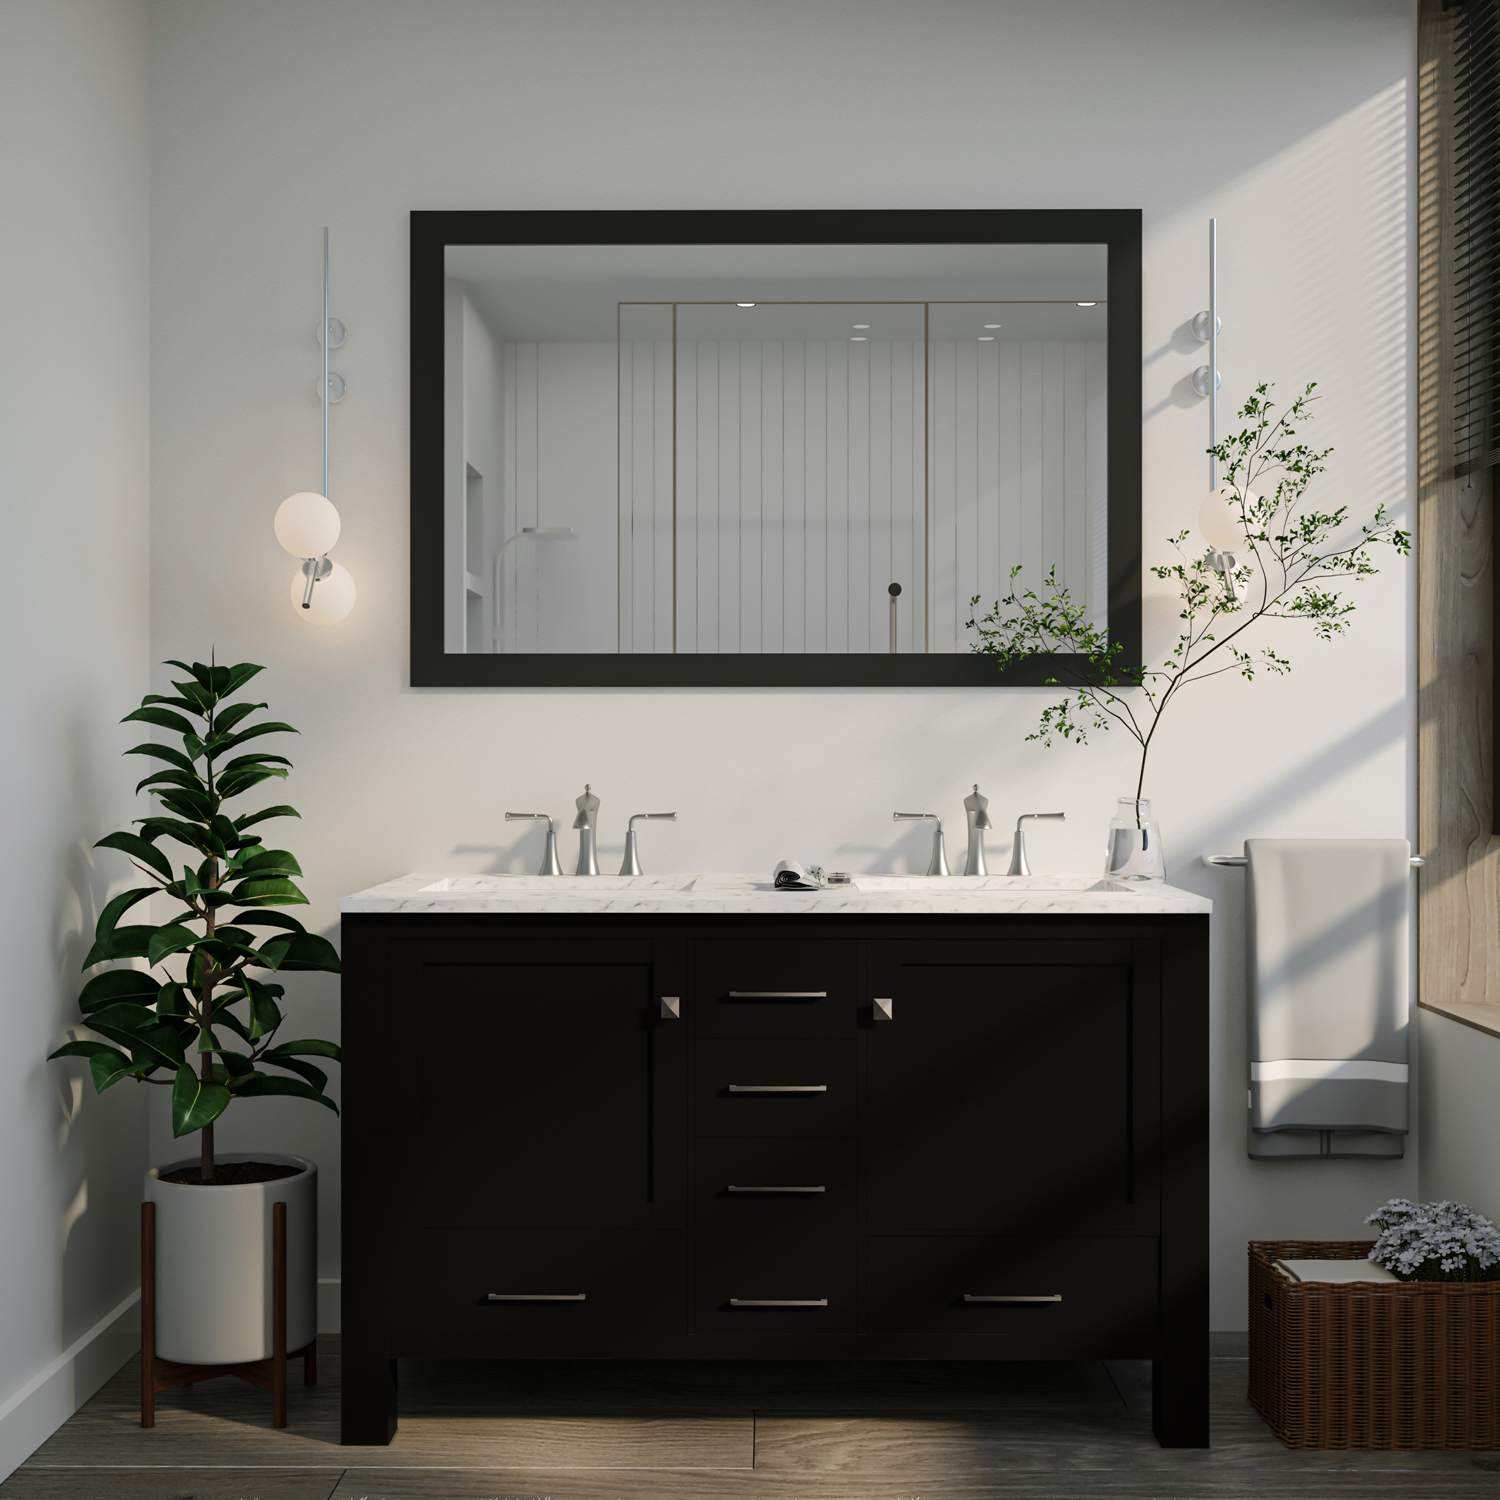 "EVVN412 48ES DS A Main - Eviva Aberdeen 48"" Transitional Espresso Bathroom Vanity with White Carrara Countertop and double Sinks"